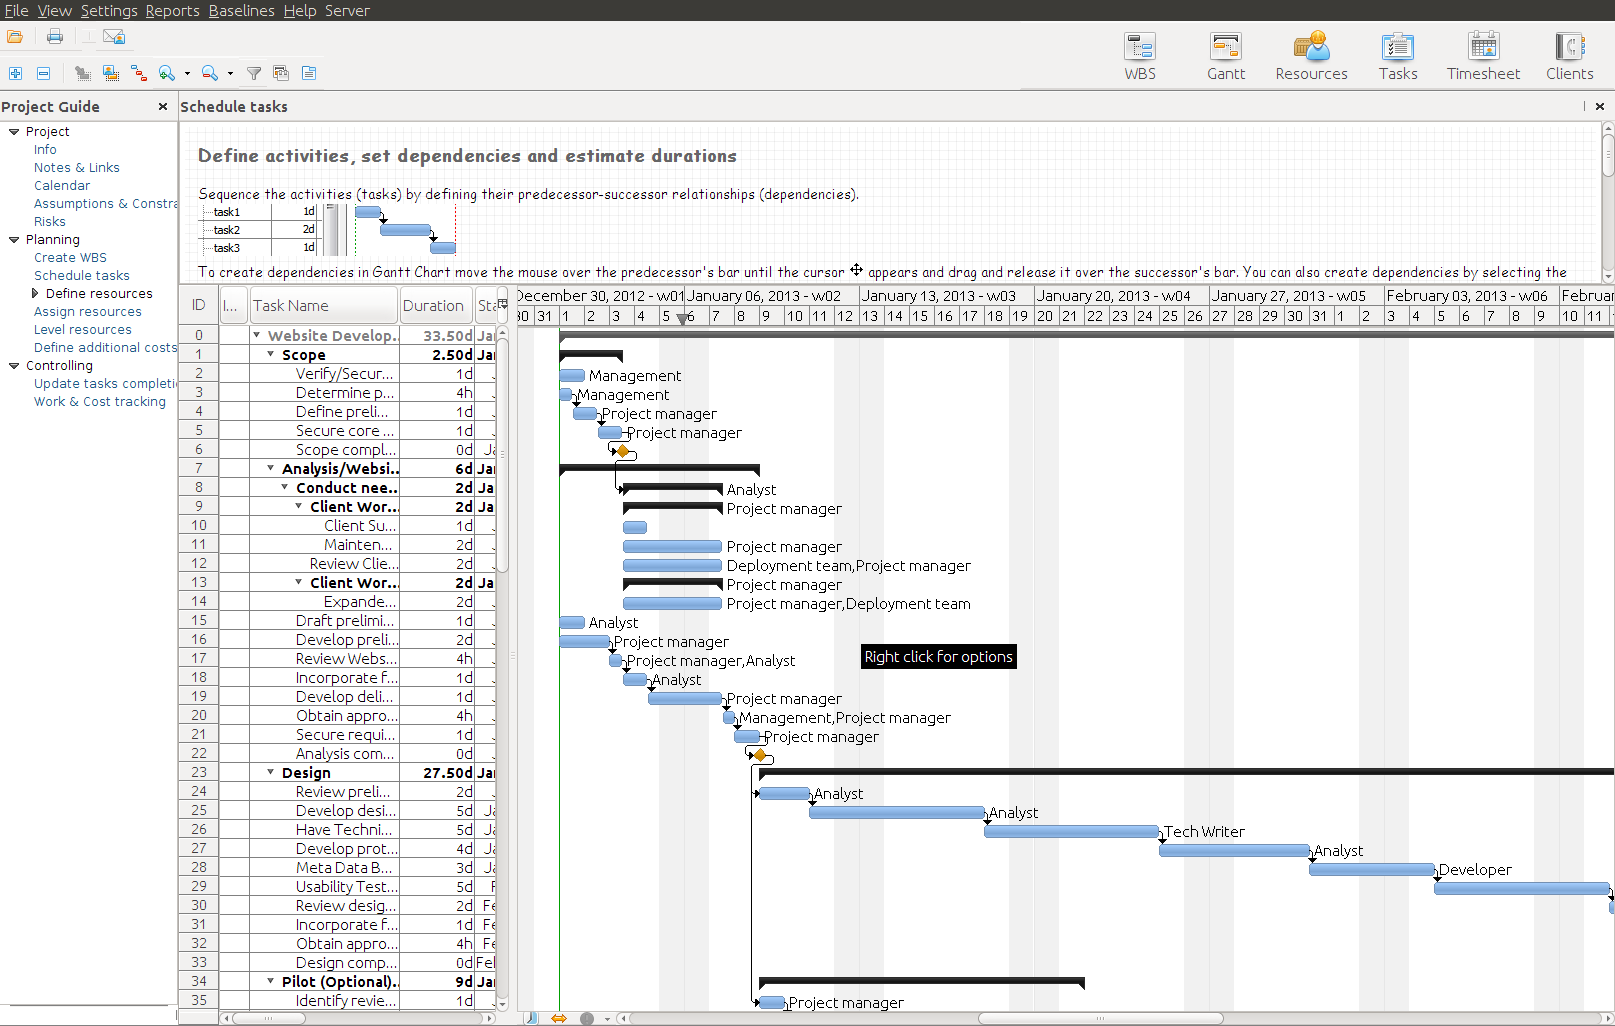 RationalPlan Project Viewer for Linux